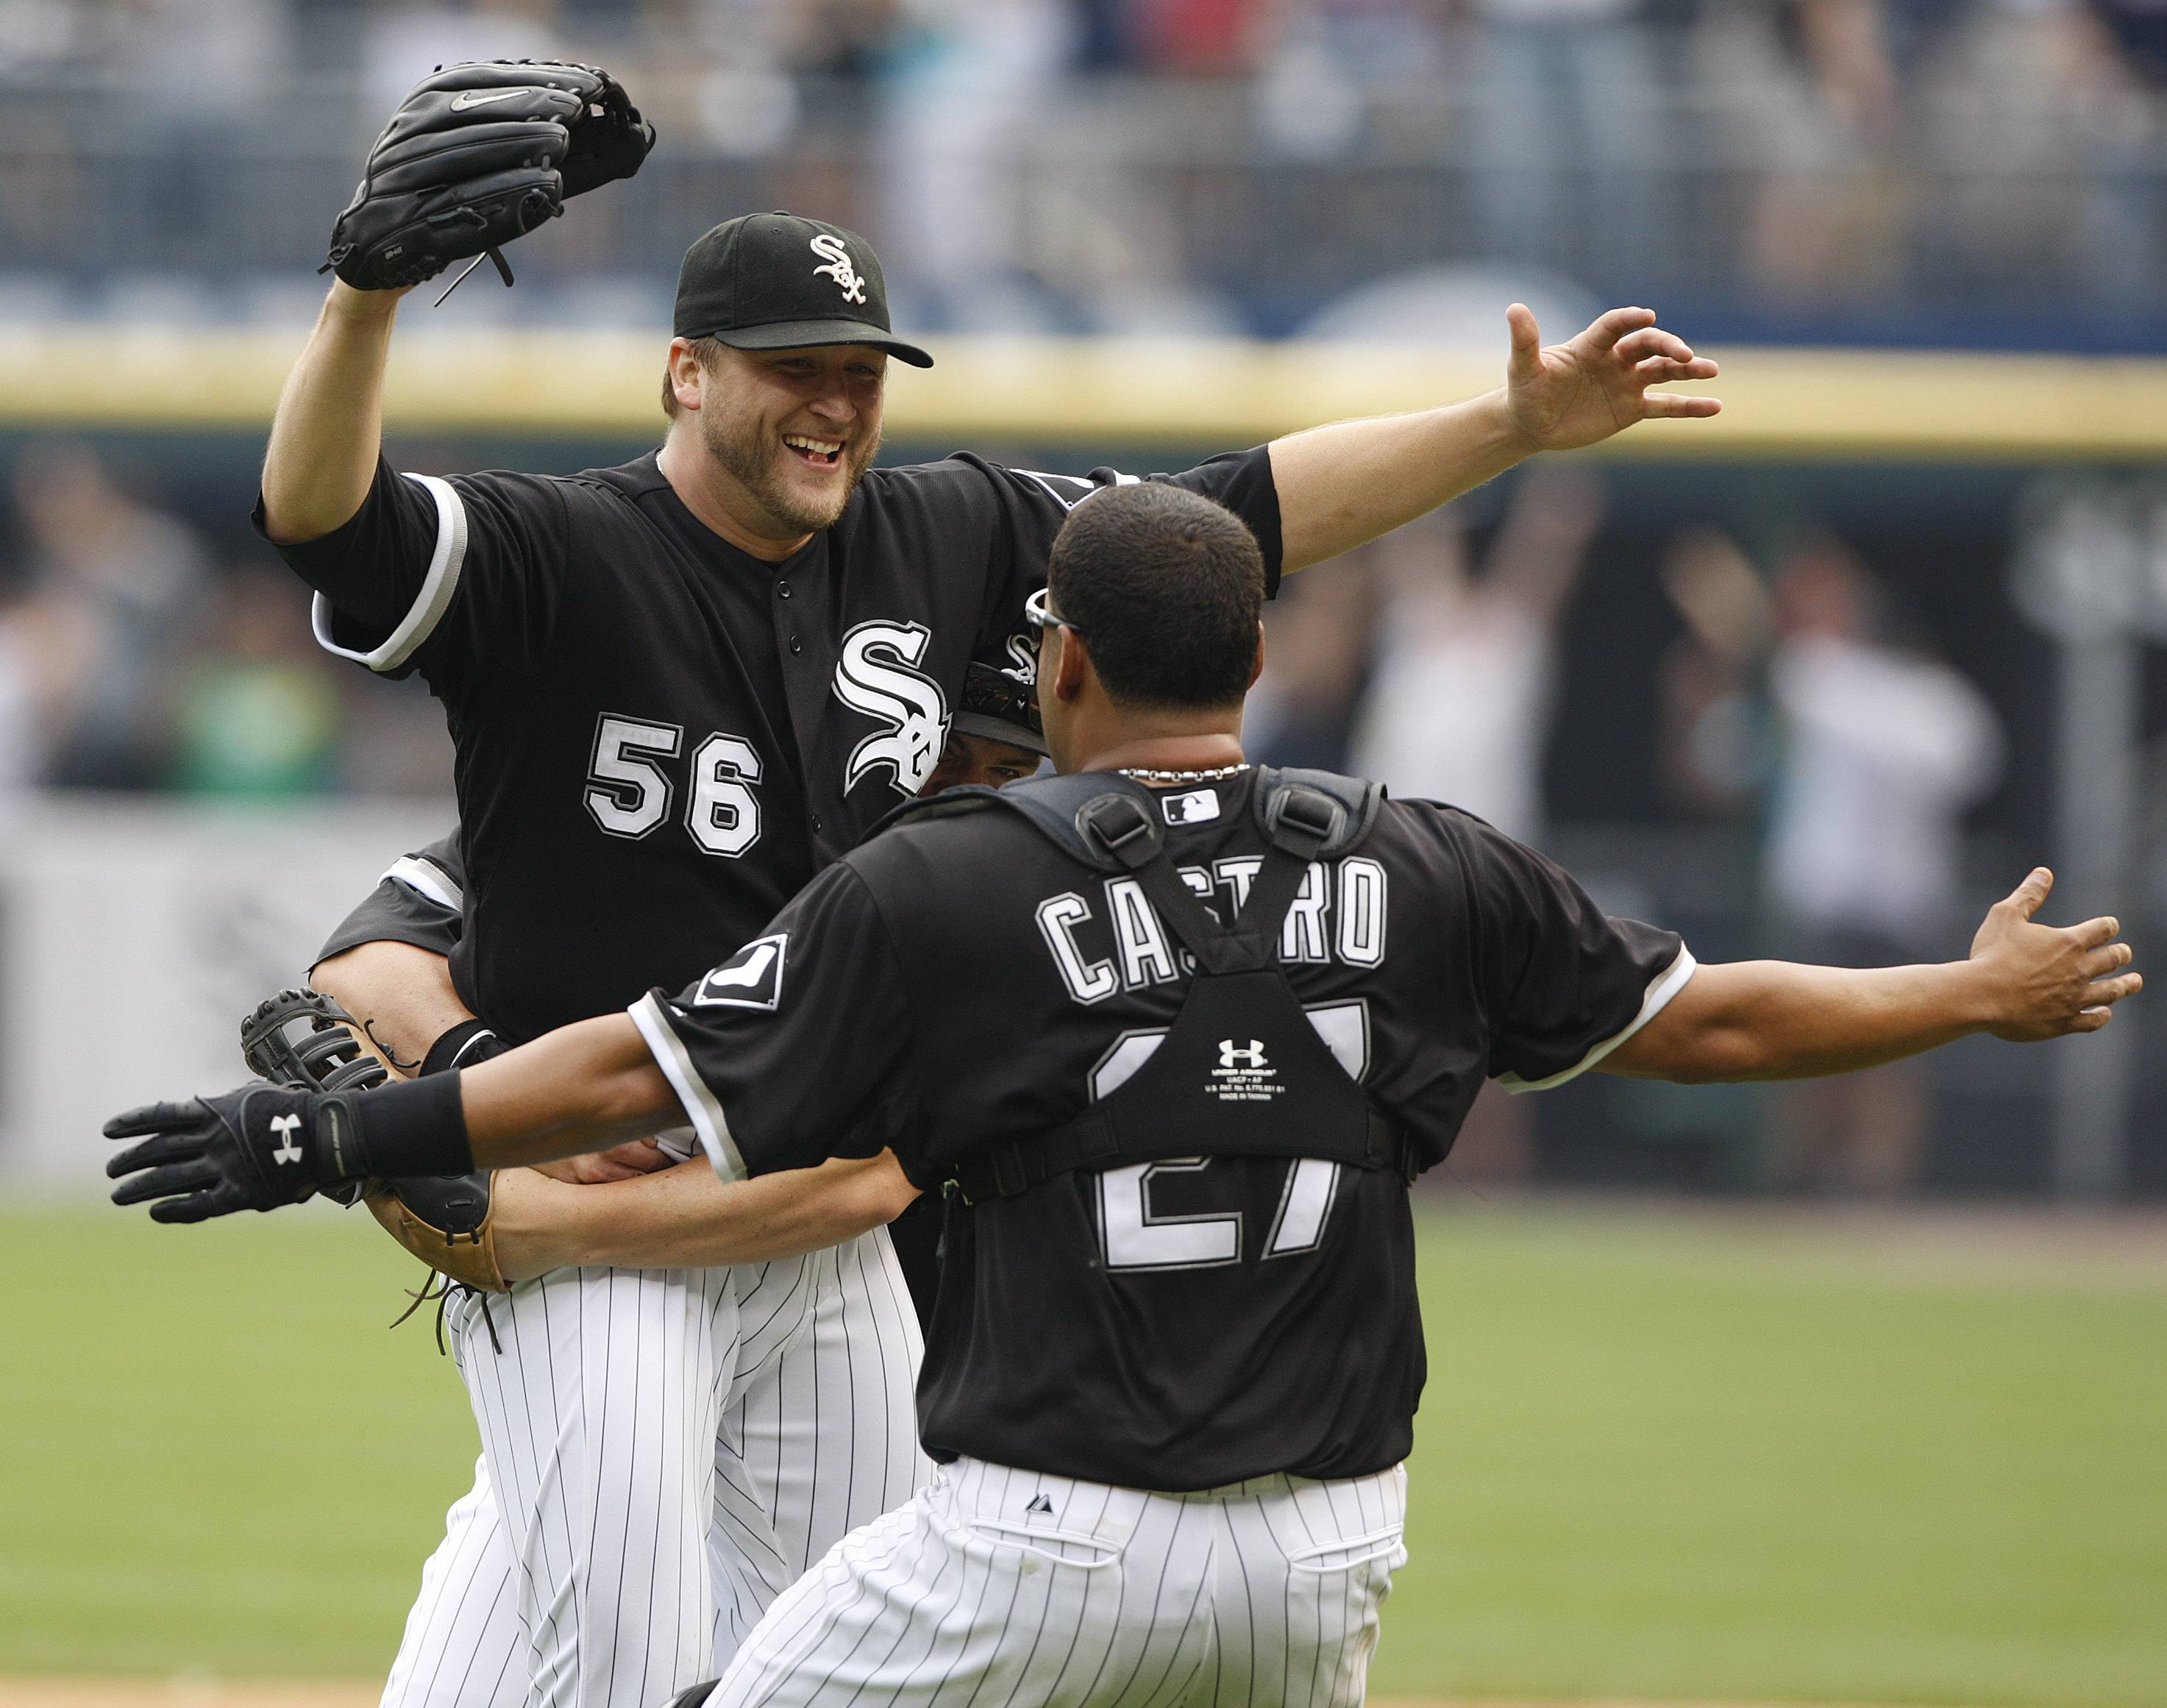 Chicago White Sox pitcher Mark Buehrle, left, is embraced by teammates including catcher Ramon Castro after throwing a perfect game against the Tampa Bay Rays in a baseball game, Thursday, July 23, 2009, in Chicago. The White Sox won 5-0. (AP Photo/Jim Prisching)